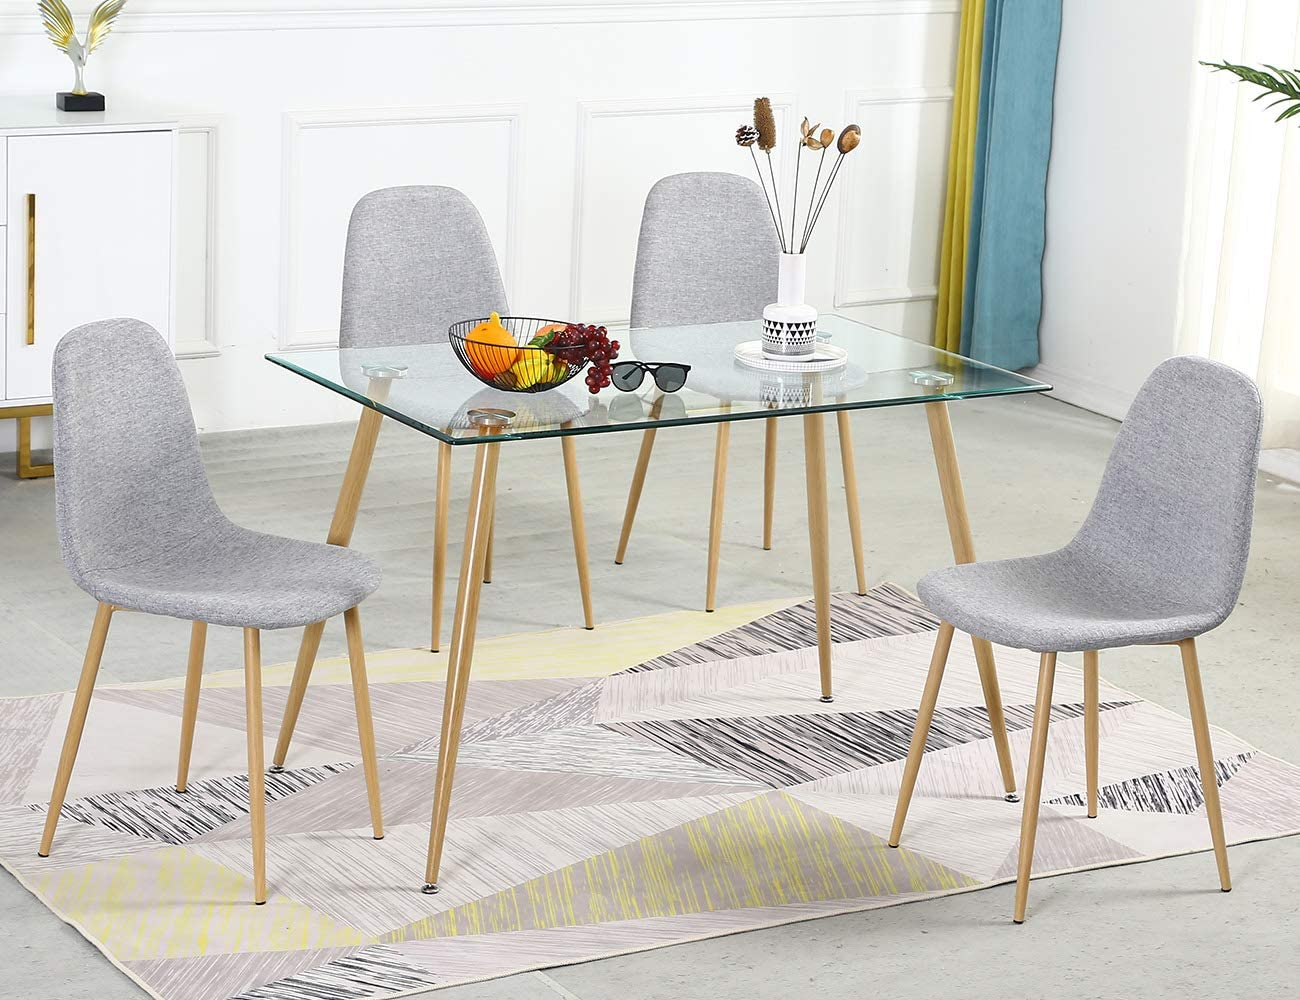 Bacyion Glass Dining Table Set for 9, Modern Kitchen Table and Chairs Set  for 9, Tempered Glass Dining Room Table Set and Velvet Dining Chairs, 9 ...